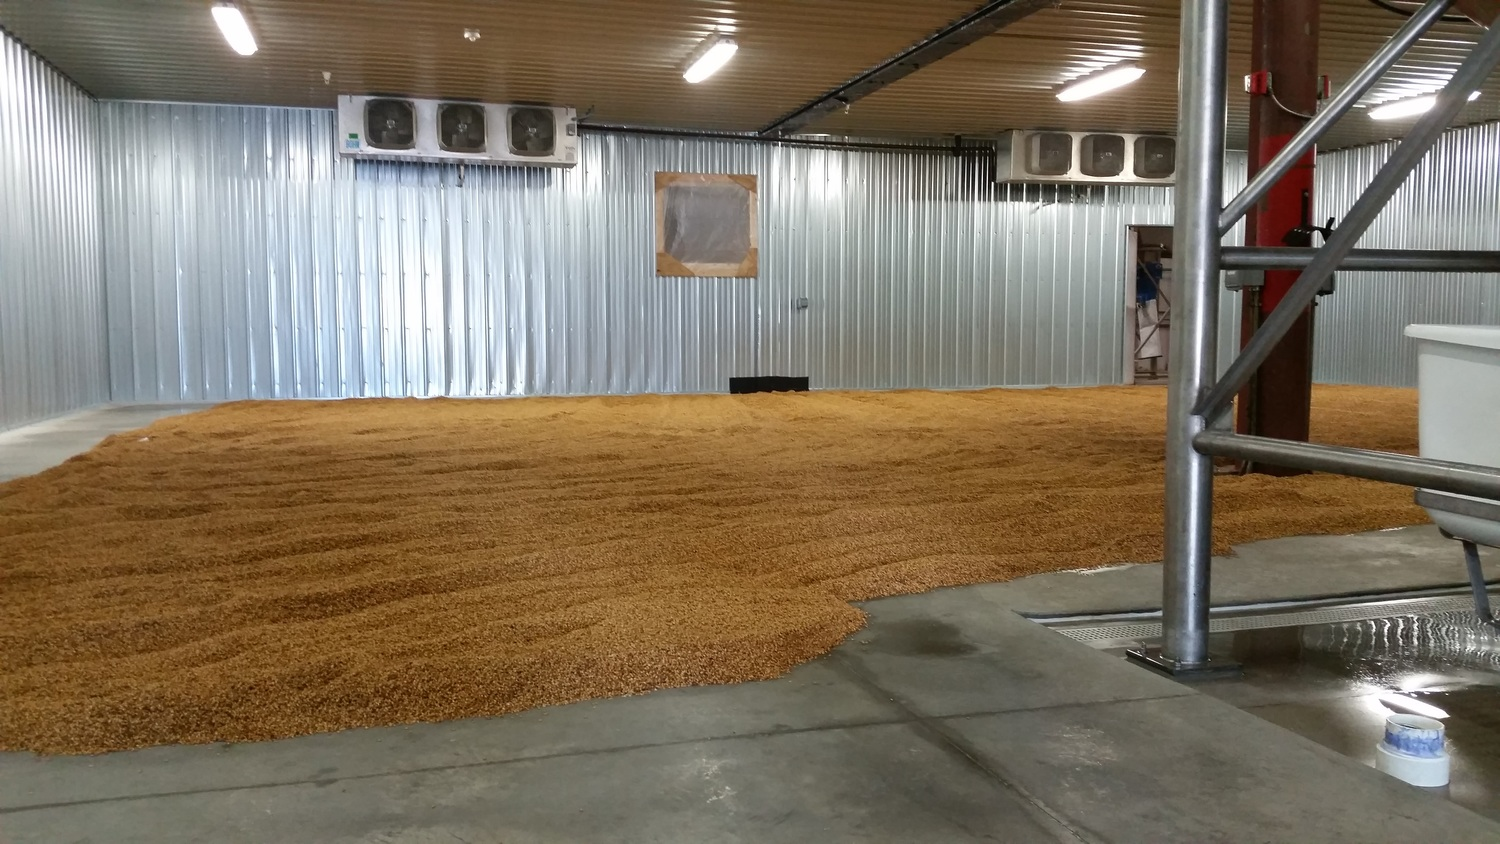 On the floor at Blue Ox Malthouse are tons of recently steeped grains that have begun the germination process. Behind the back wall is the kiln.